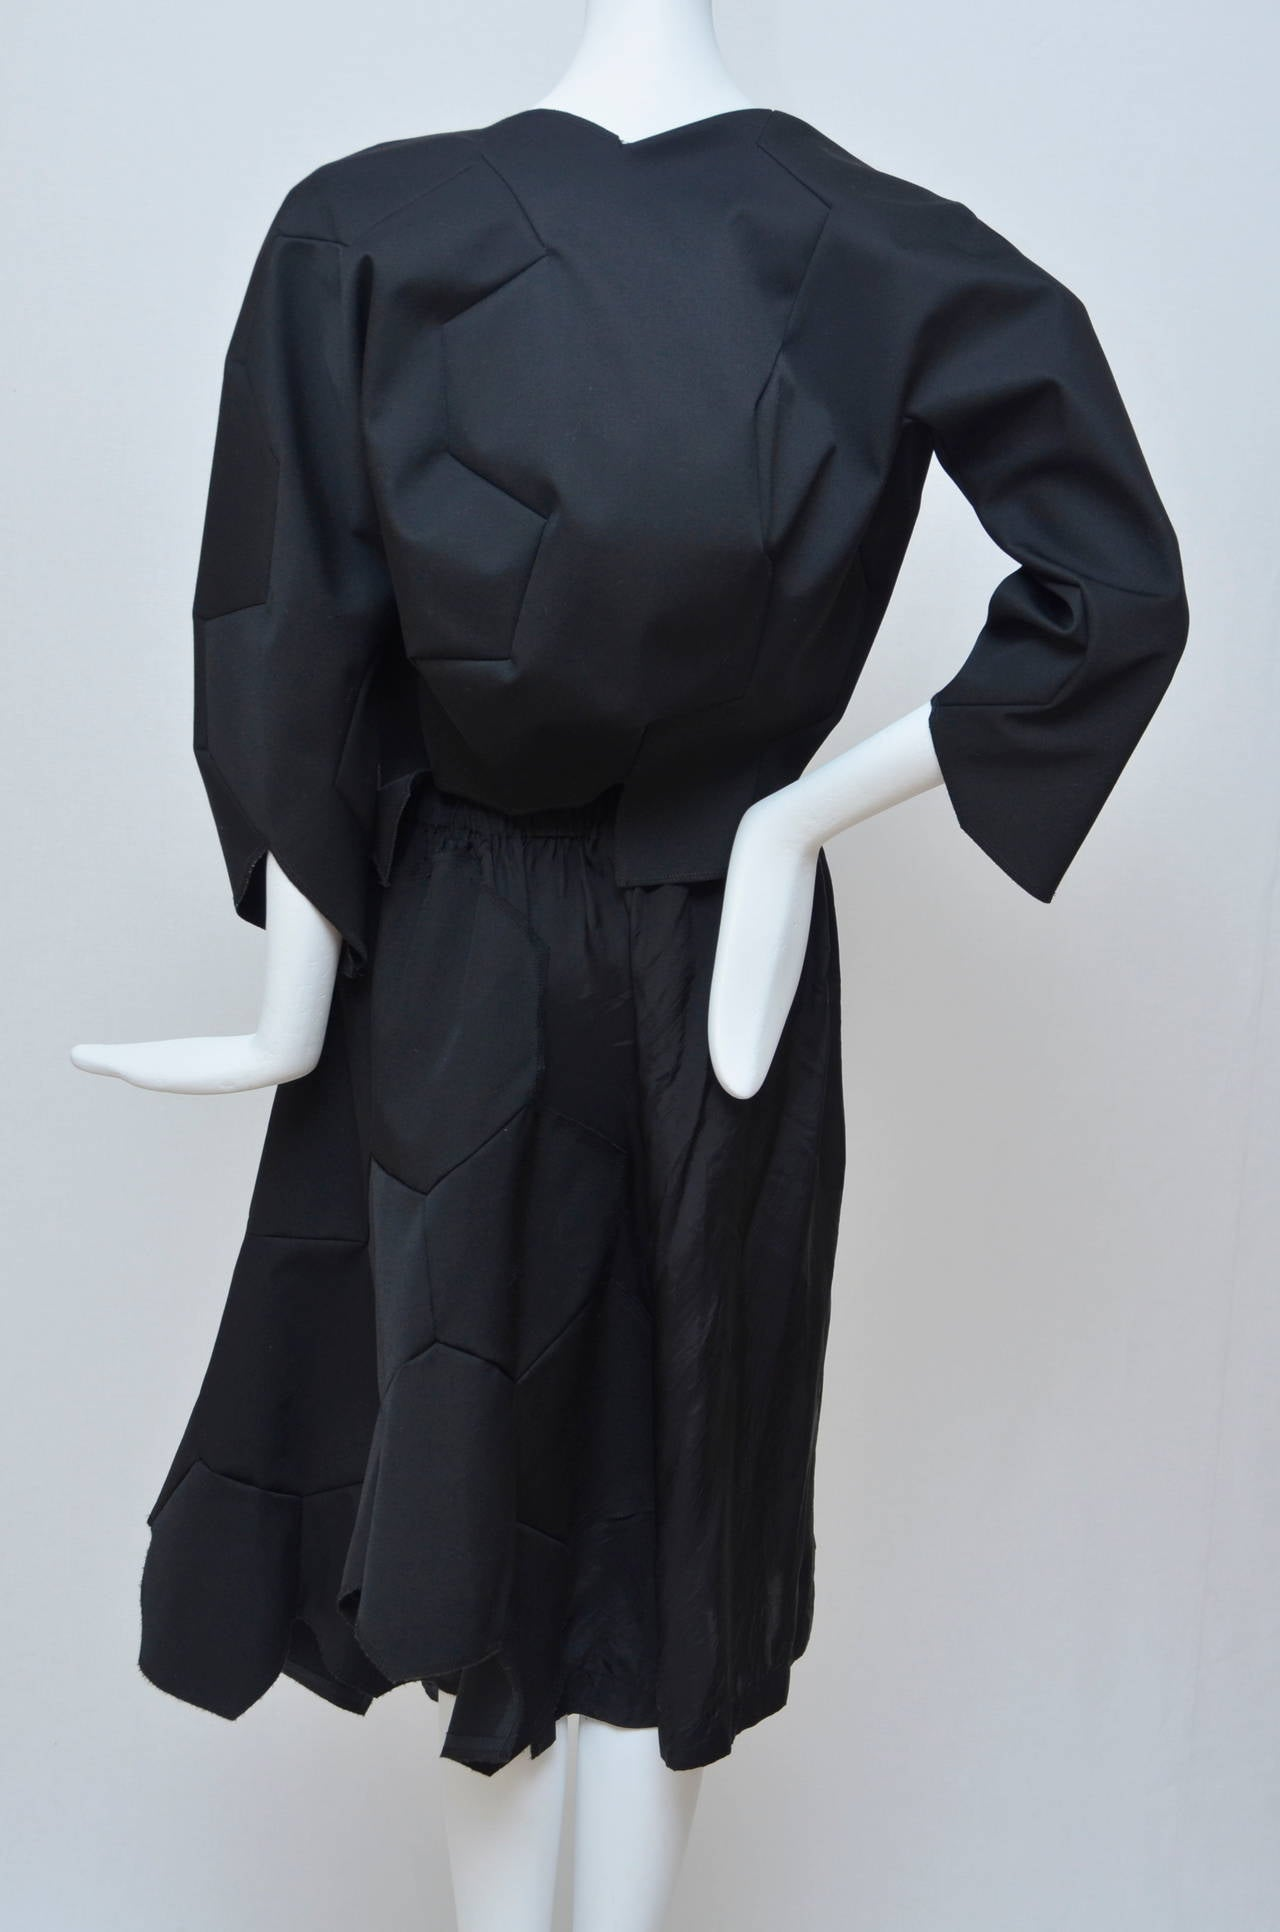 Comme Des Garcons Football Soccer Set Runway Jacket  and Skirt Ad 2008 For Sale 2